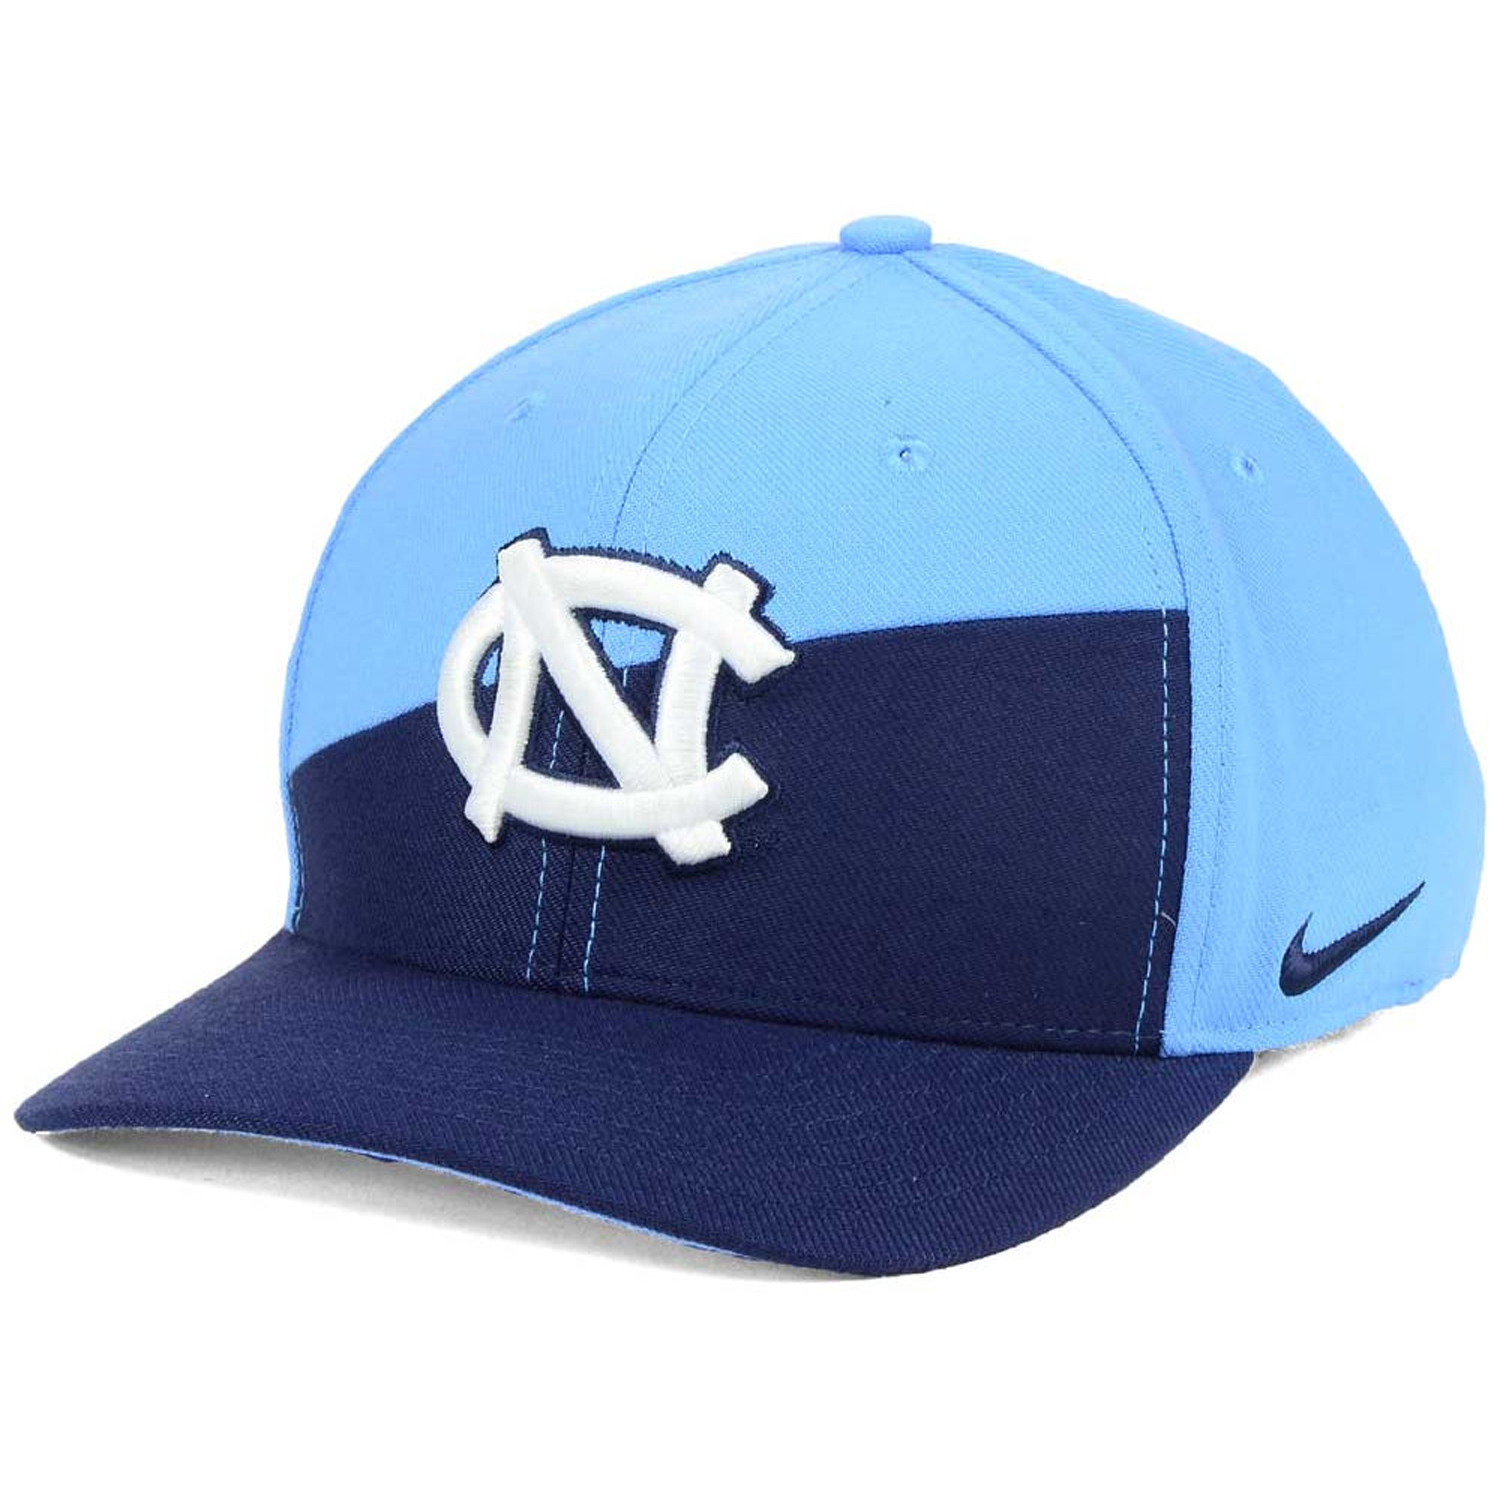 buy popular 9ce37 29485 ... blue hat ncaa north carolina tar heels unc 1982f fba1f  coupon code for  details about nike north carolina tar heels unc swoosh flex stretch  colorblock ...